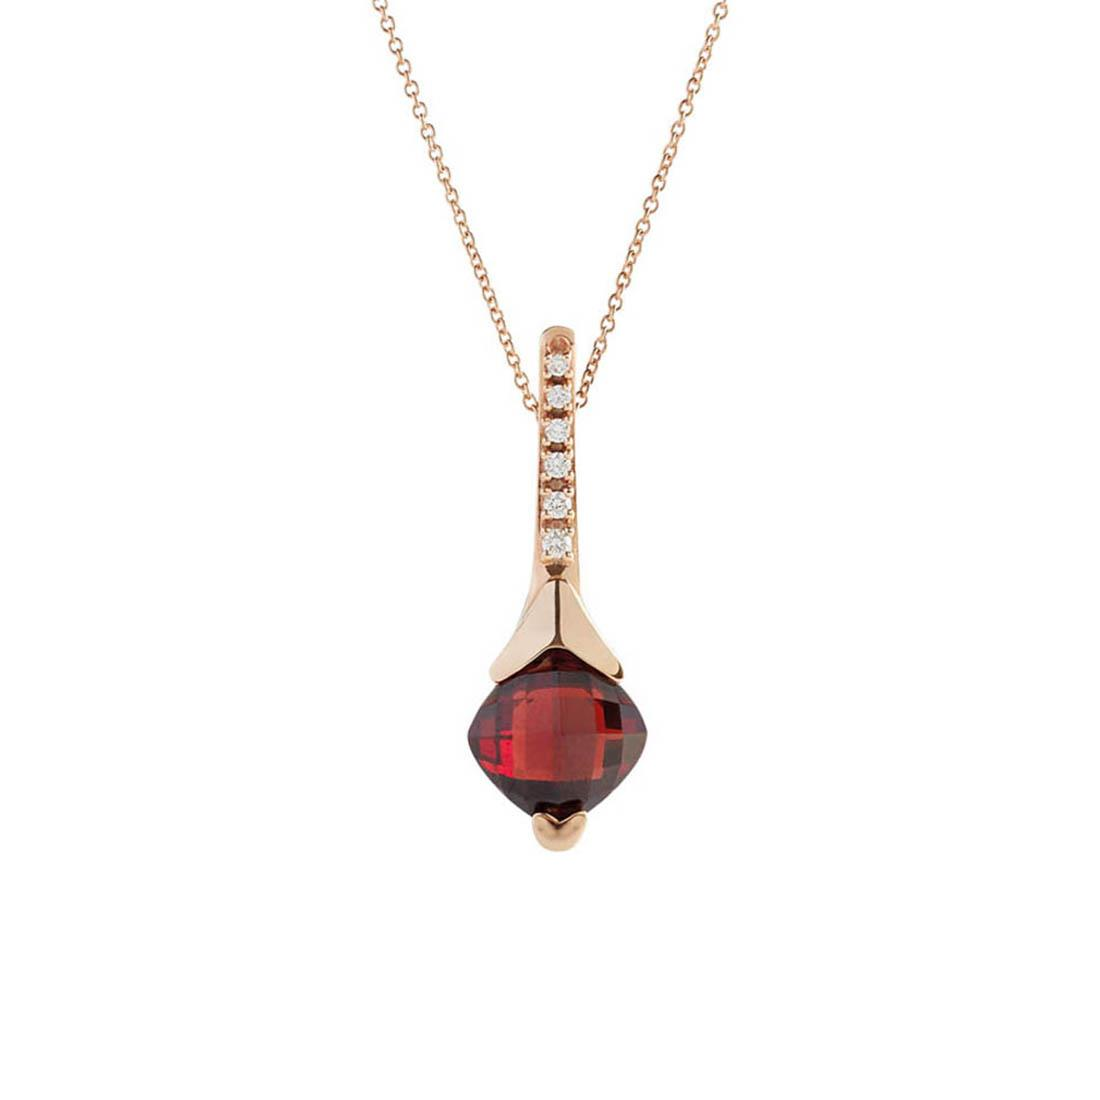 Rose gold pendant with 5.65 ct square briolette cut garnet and 0.10 ct diamonds 